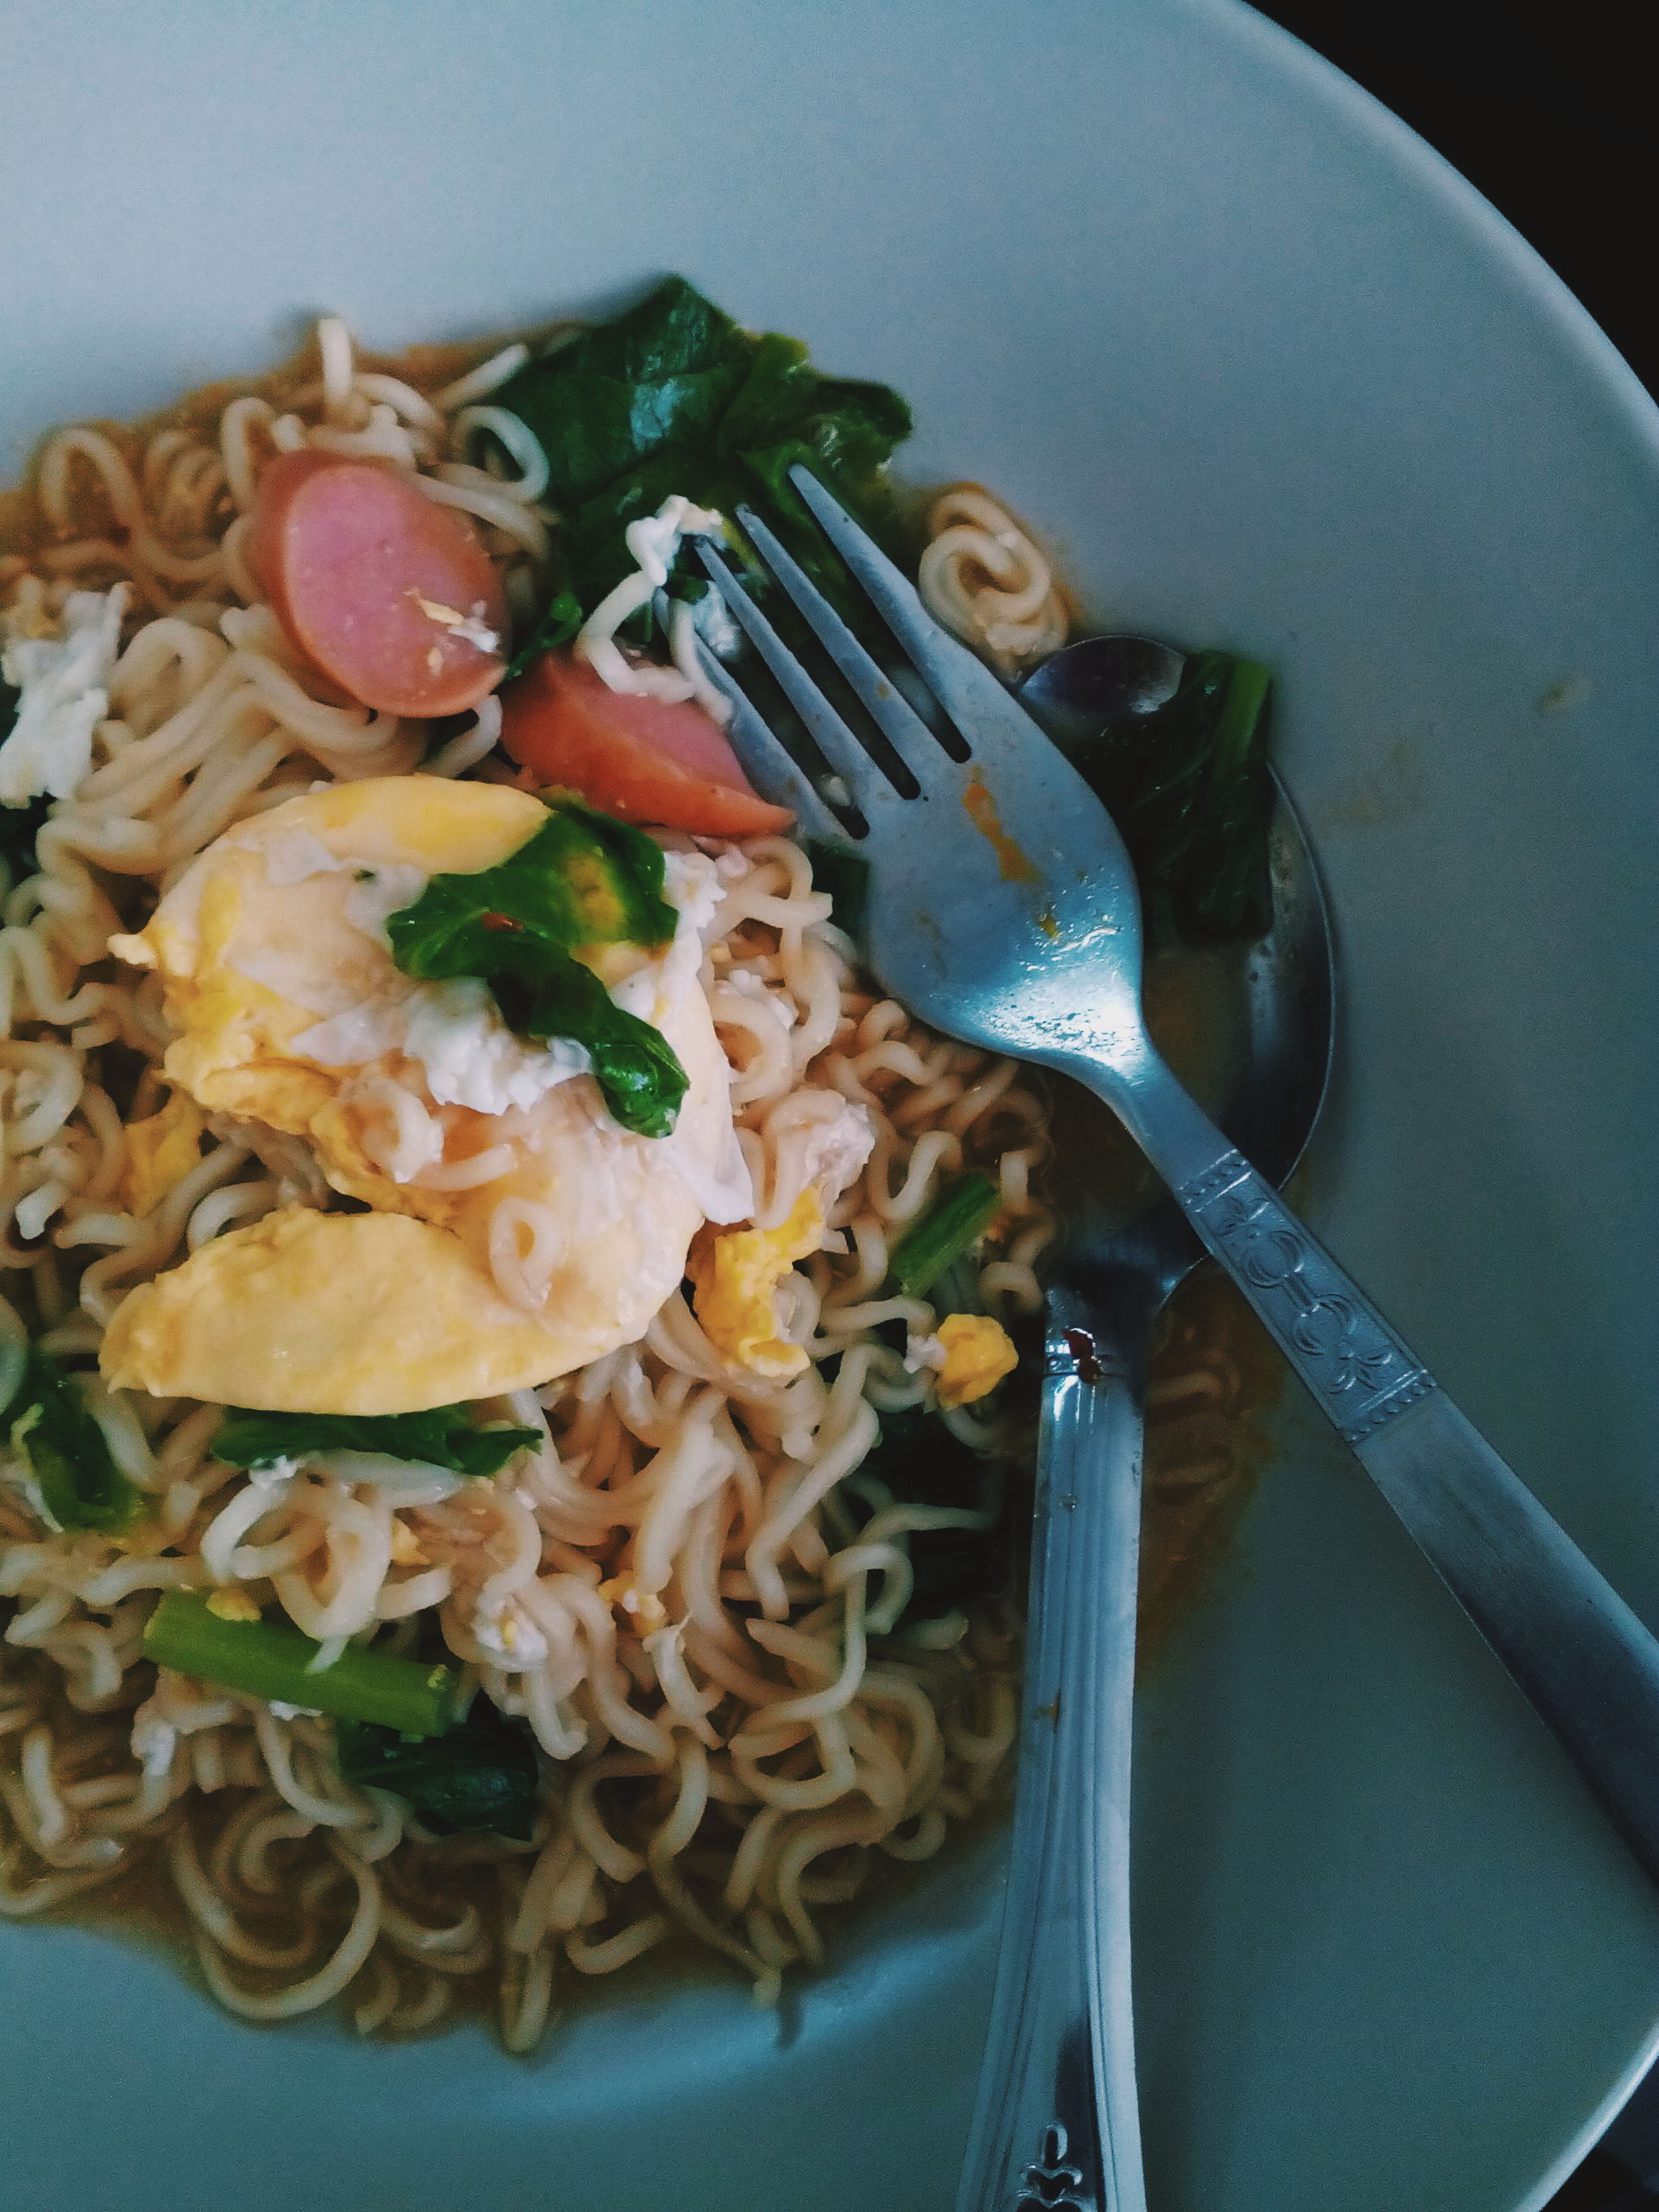 indoors, food, food and drink, freshness, healthy eating, plate, still life, ready-to-eat, high angle view, bowl, meal, table, spoon, directly above, vegetable, serving size, noodles, close-up, fork, indulgence